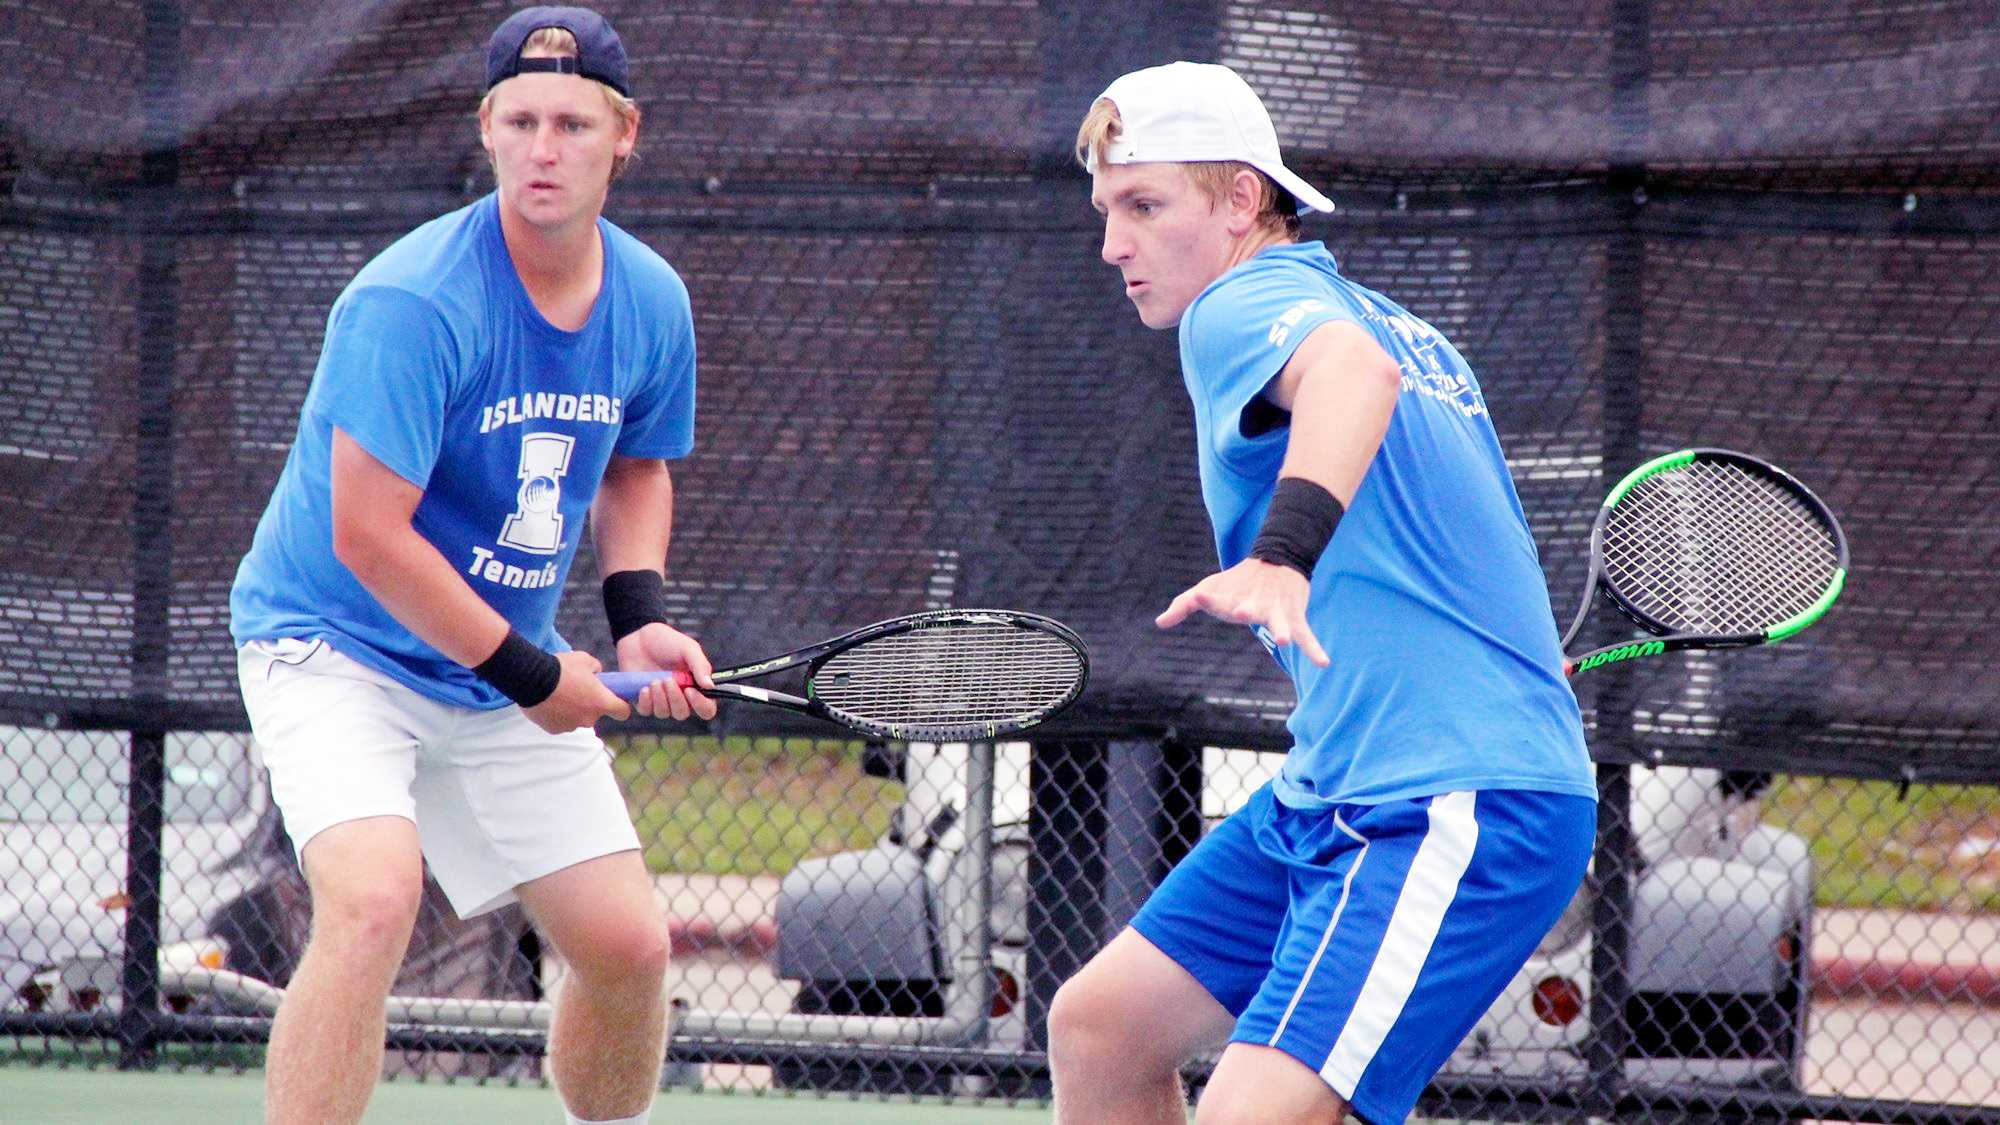 Twin brothers are undefeated on Islander Tennis team